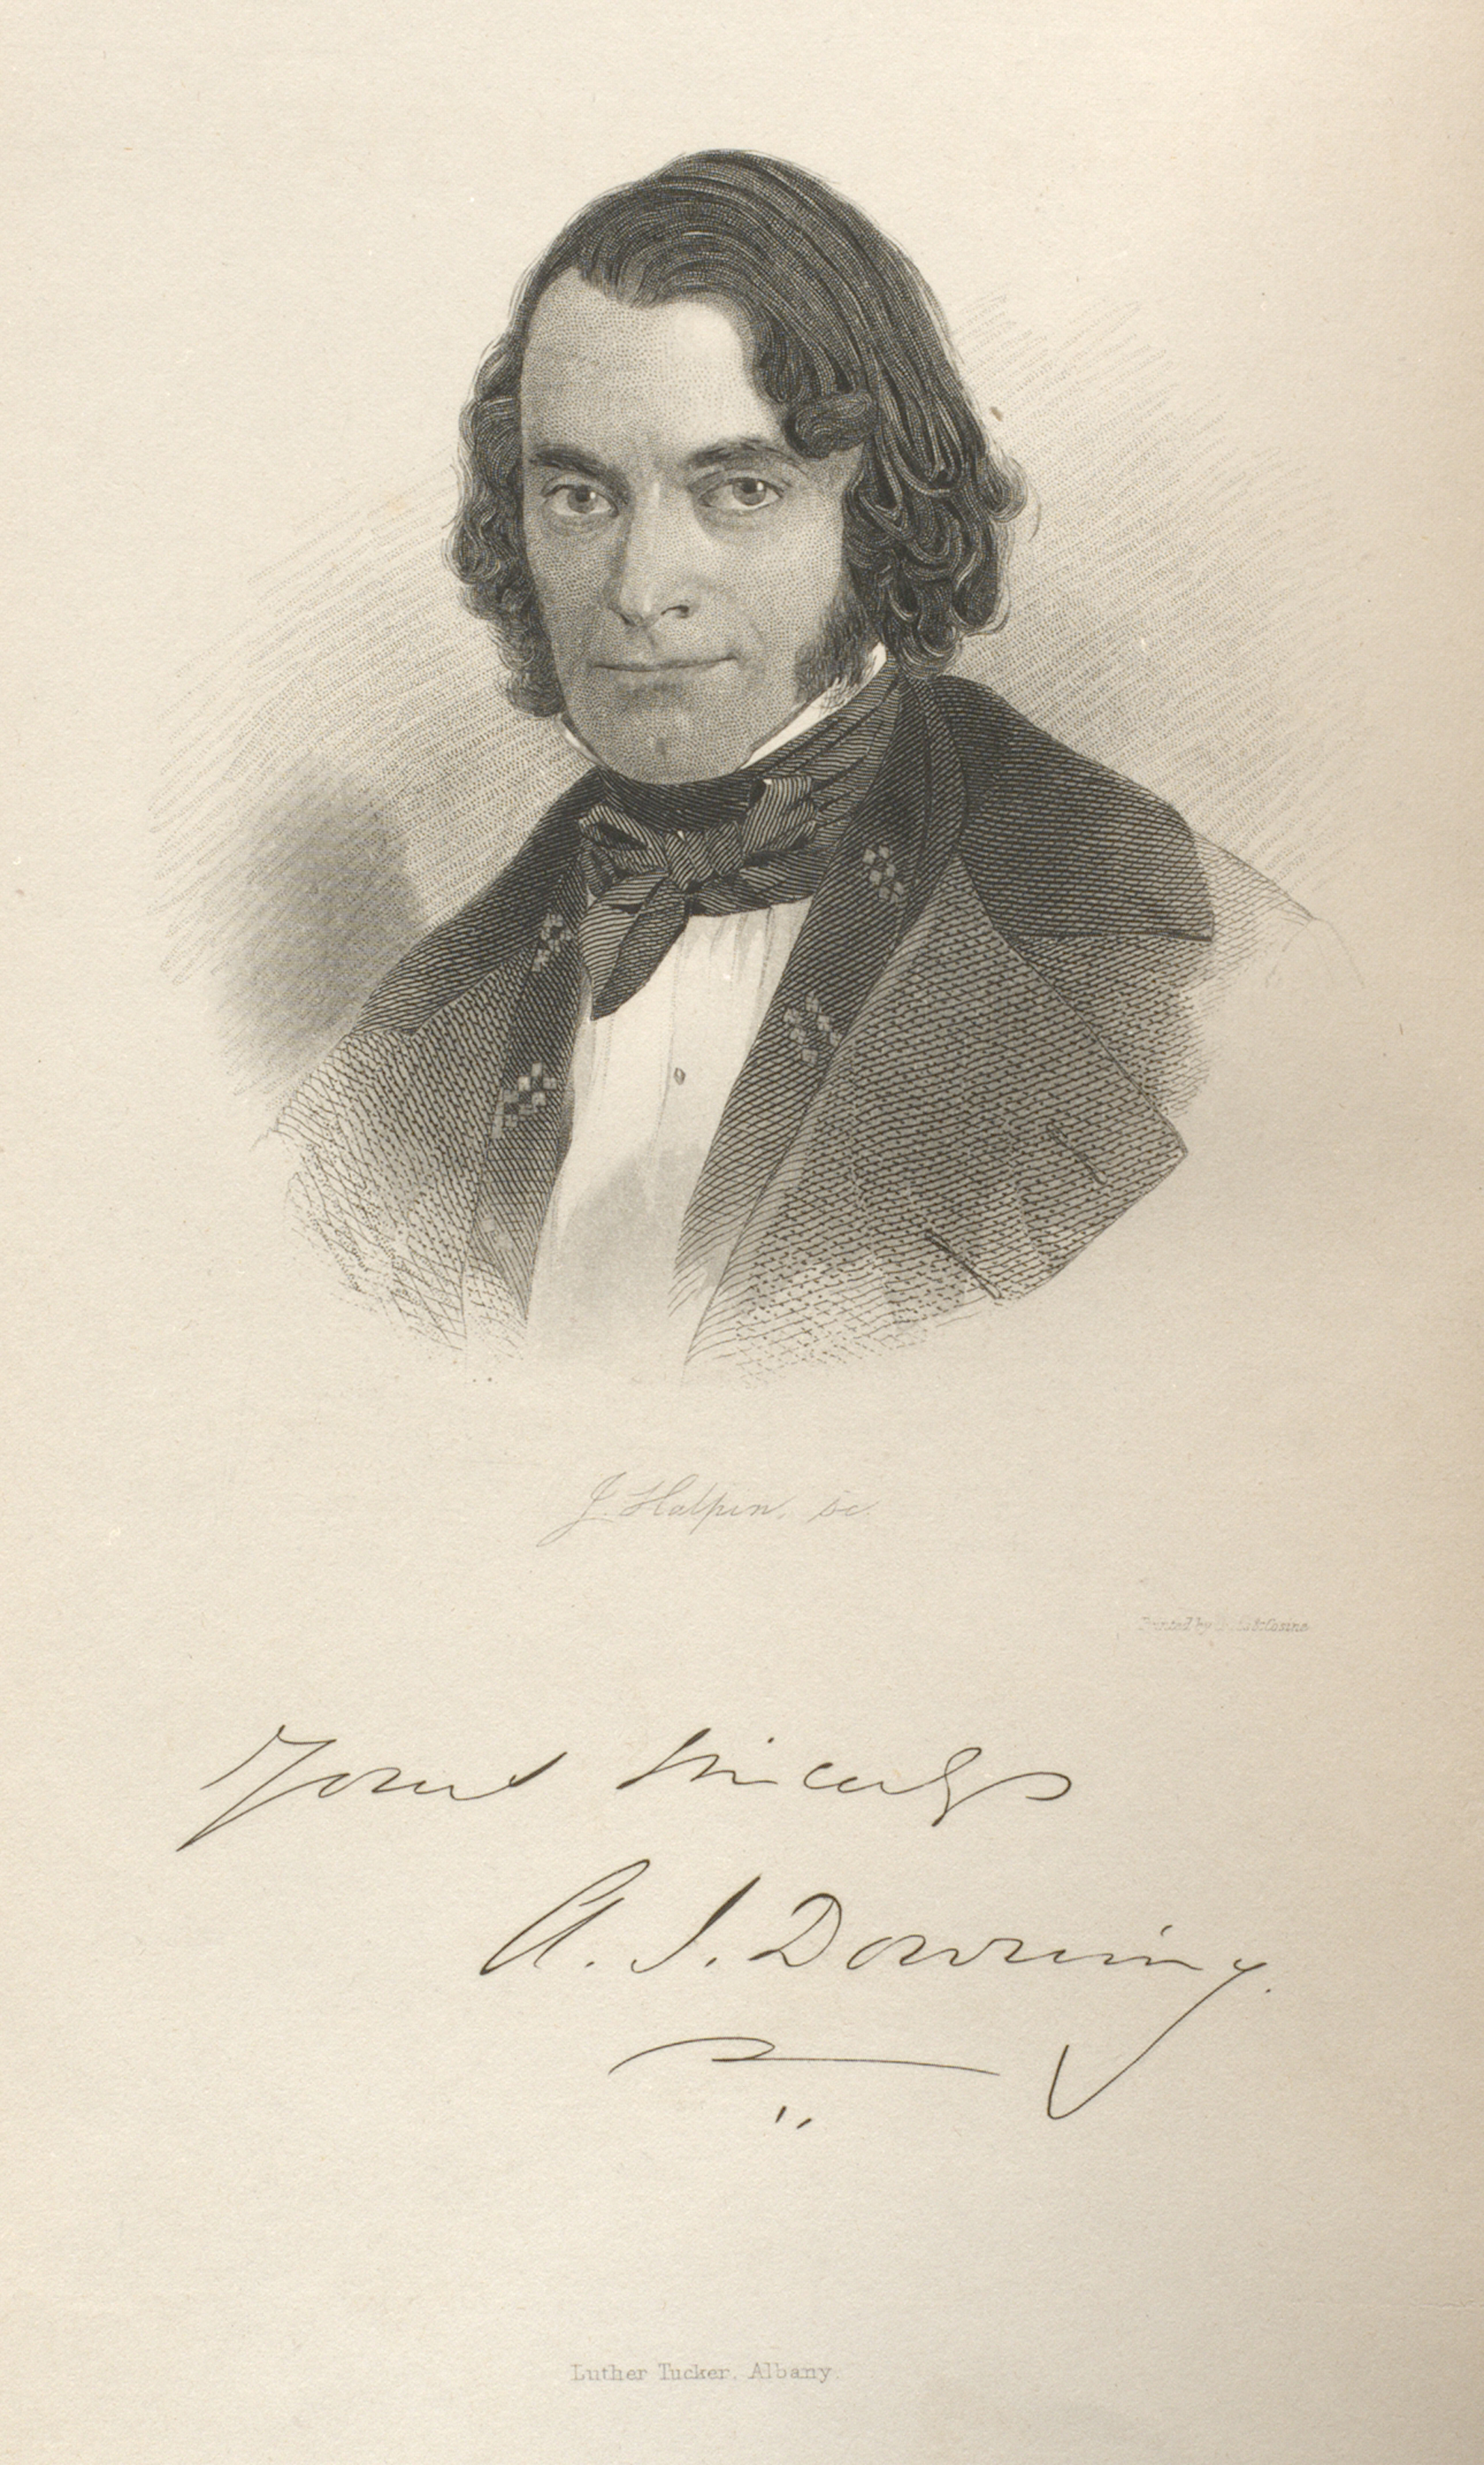 Frontispiece featuring a portrait of A. J. Downing, A treatise on the theory and practice of landscape gardening, 1859 from A.J. Downing & His Legacy exhibit. Columbia University Libraries. accessed 9-19-2016